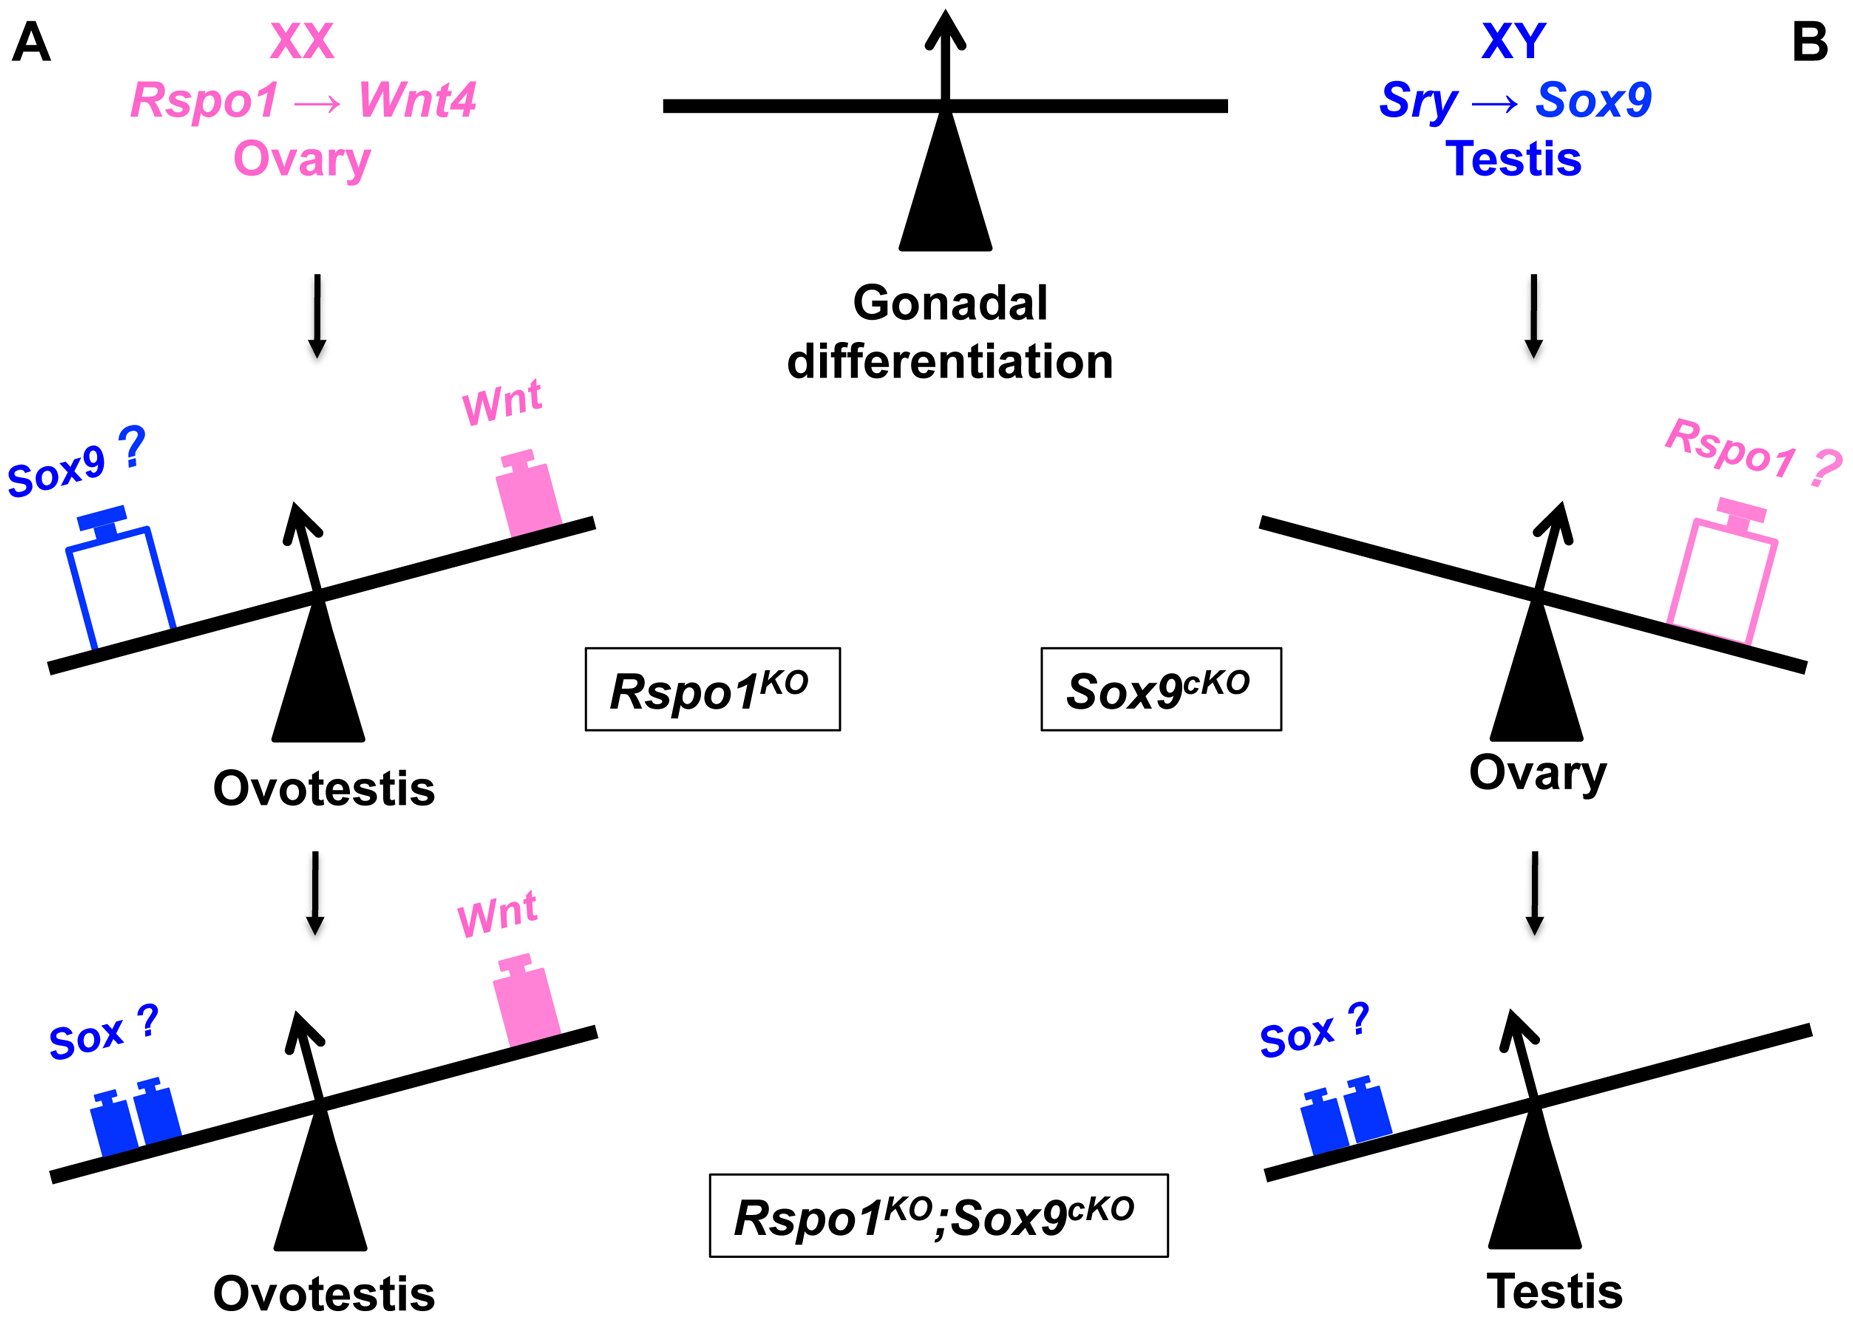 Opposing function of SOX and RSPO1 signaling in the fate of the gonad.